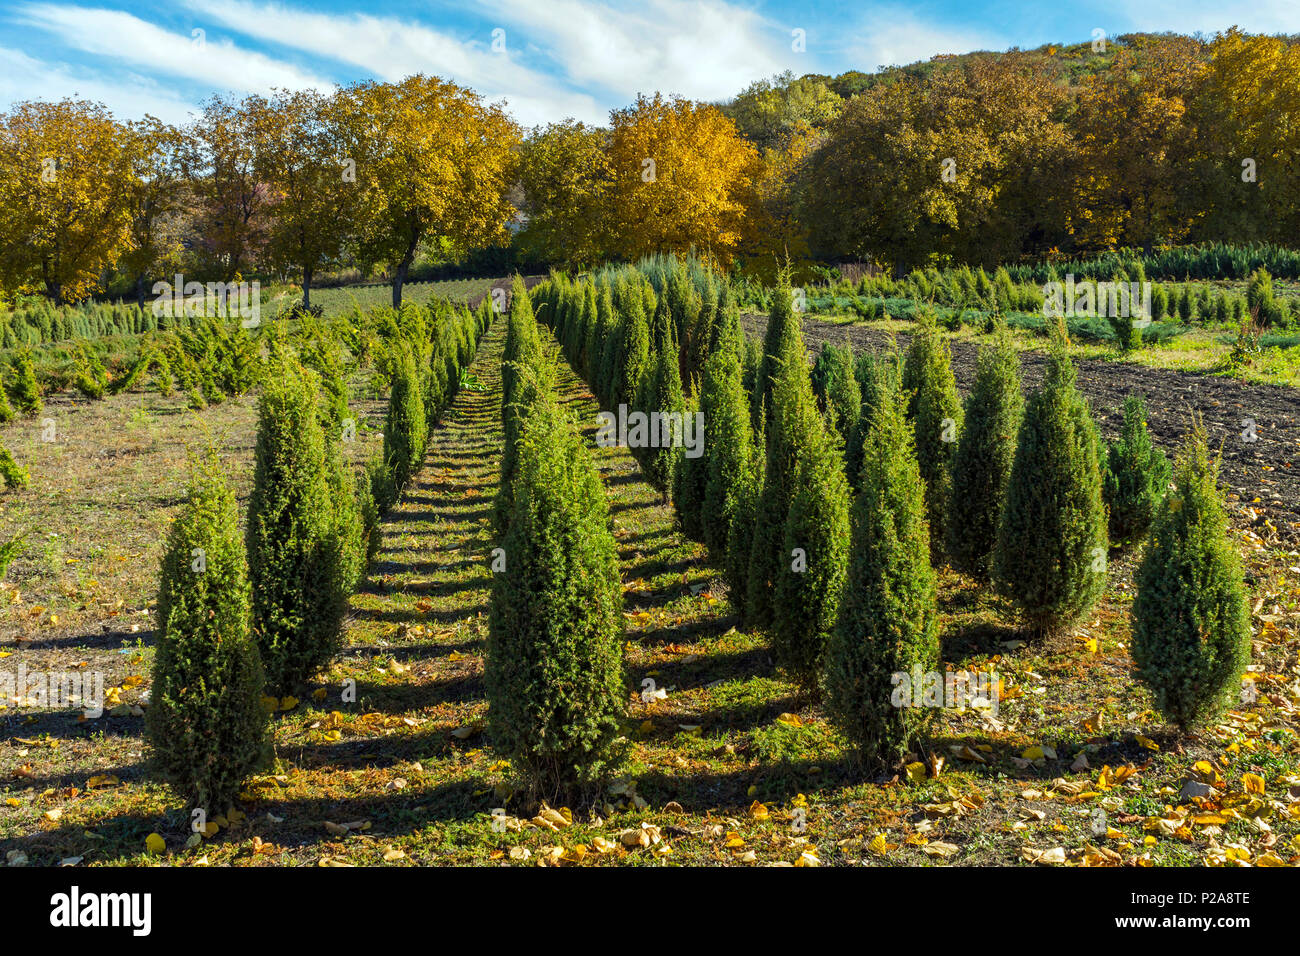 Thuja saplings in Pyatigorsk.Percalki nursery is located on the northern slope of Mount Mashuk and was created more than 120 years ago. - Stock Image